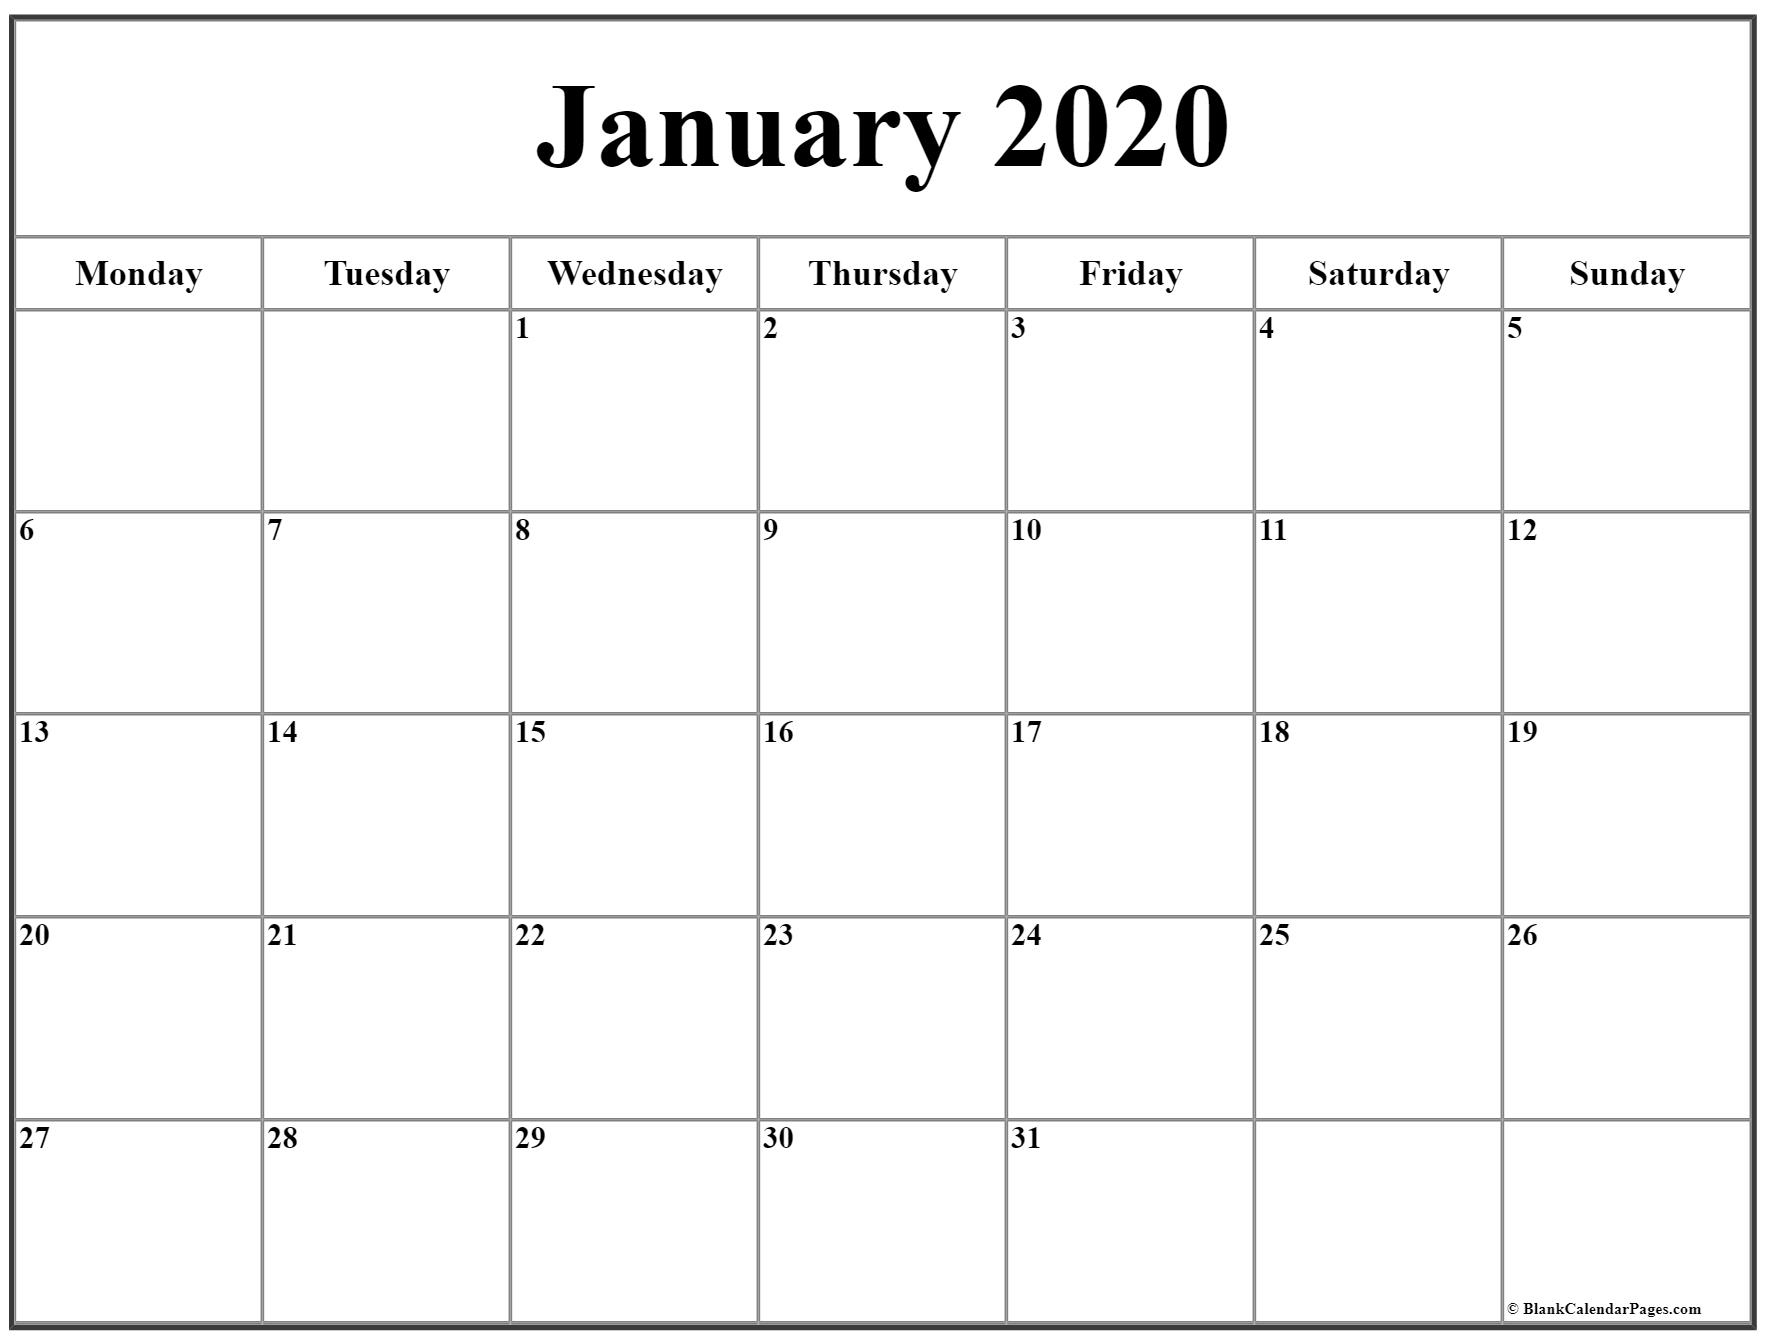 January 2020 Monday Calendar | Monday To Sunday for Monday Through Sunday Calendar